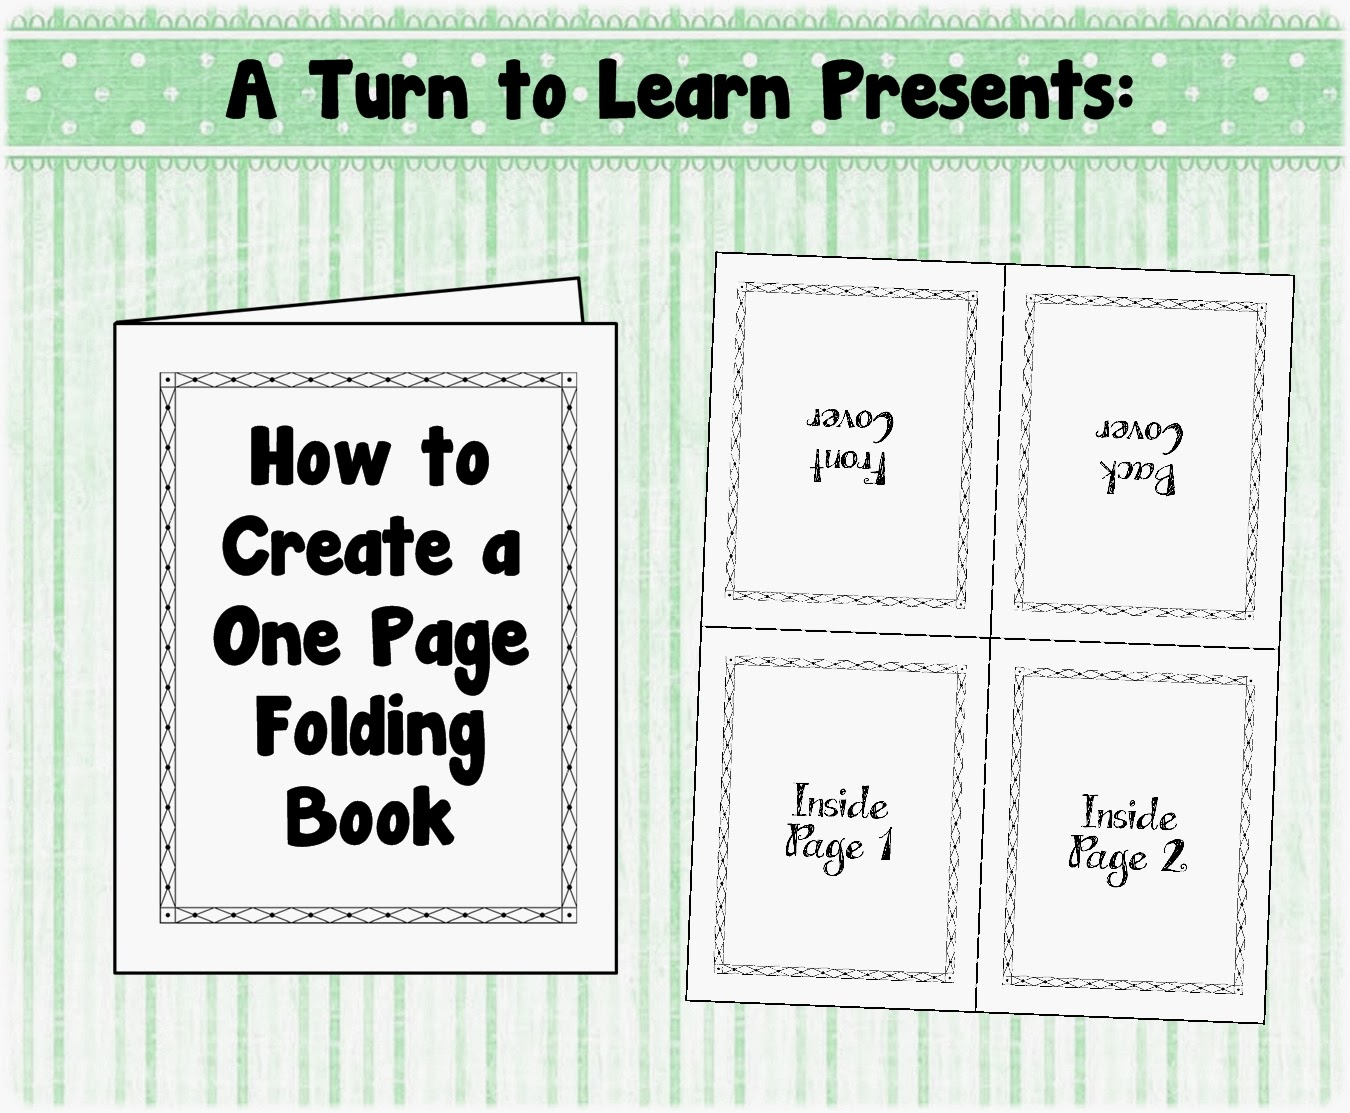 http://aturntolearn.blogspot.com/2014/02/how-to-make-one-page-folding-book.html